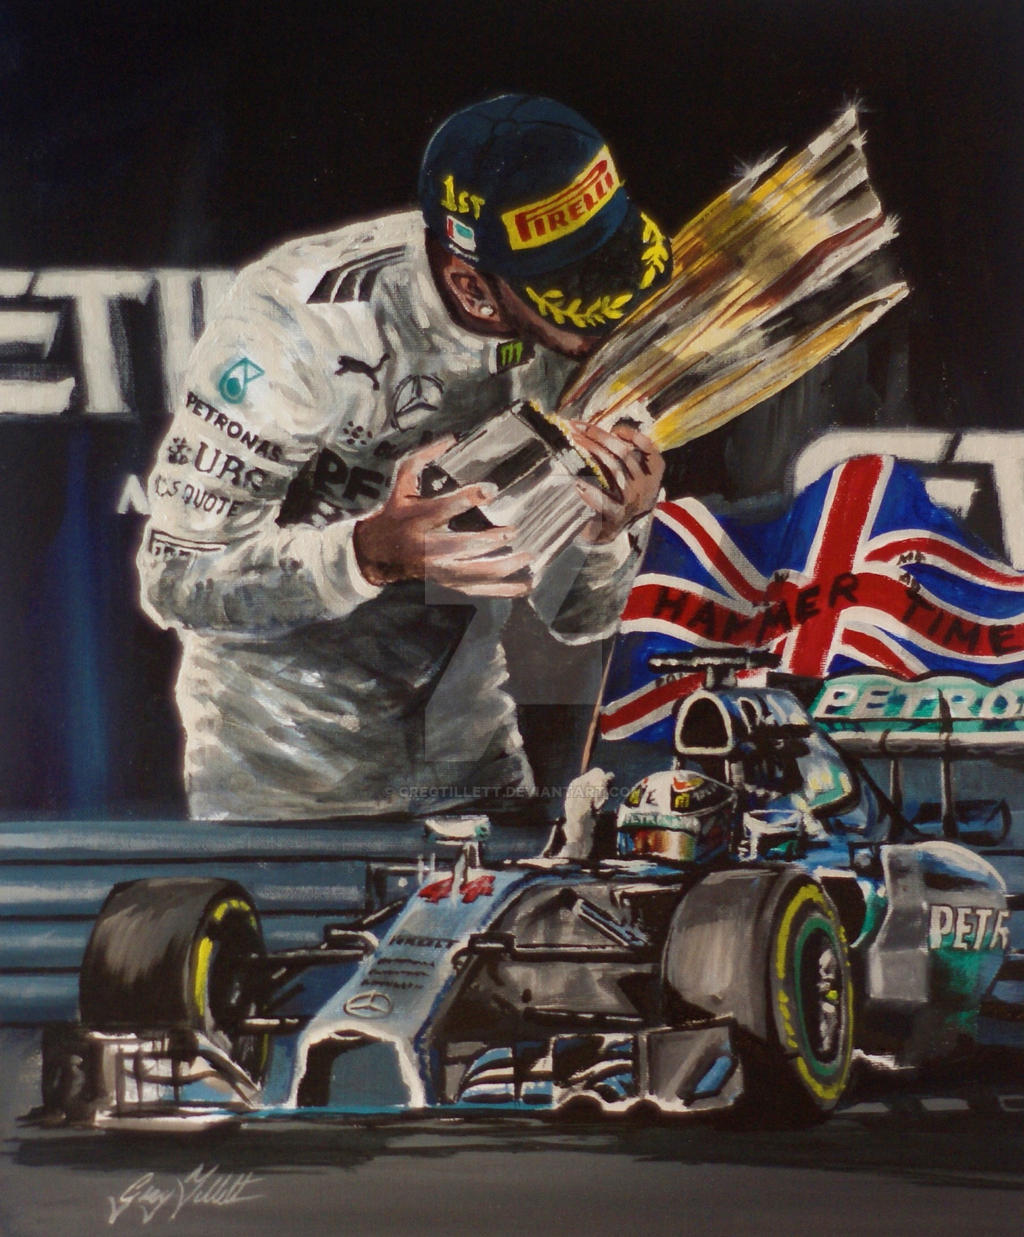 lewis hamilton 2014 formula 1 world championgregtillett on